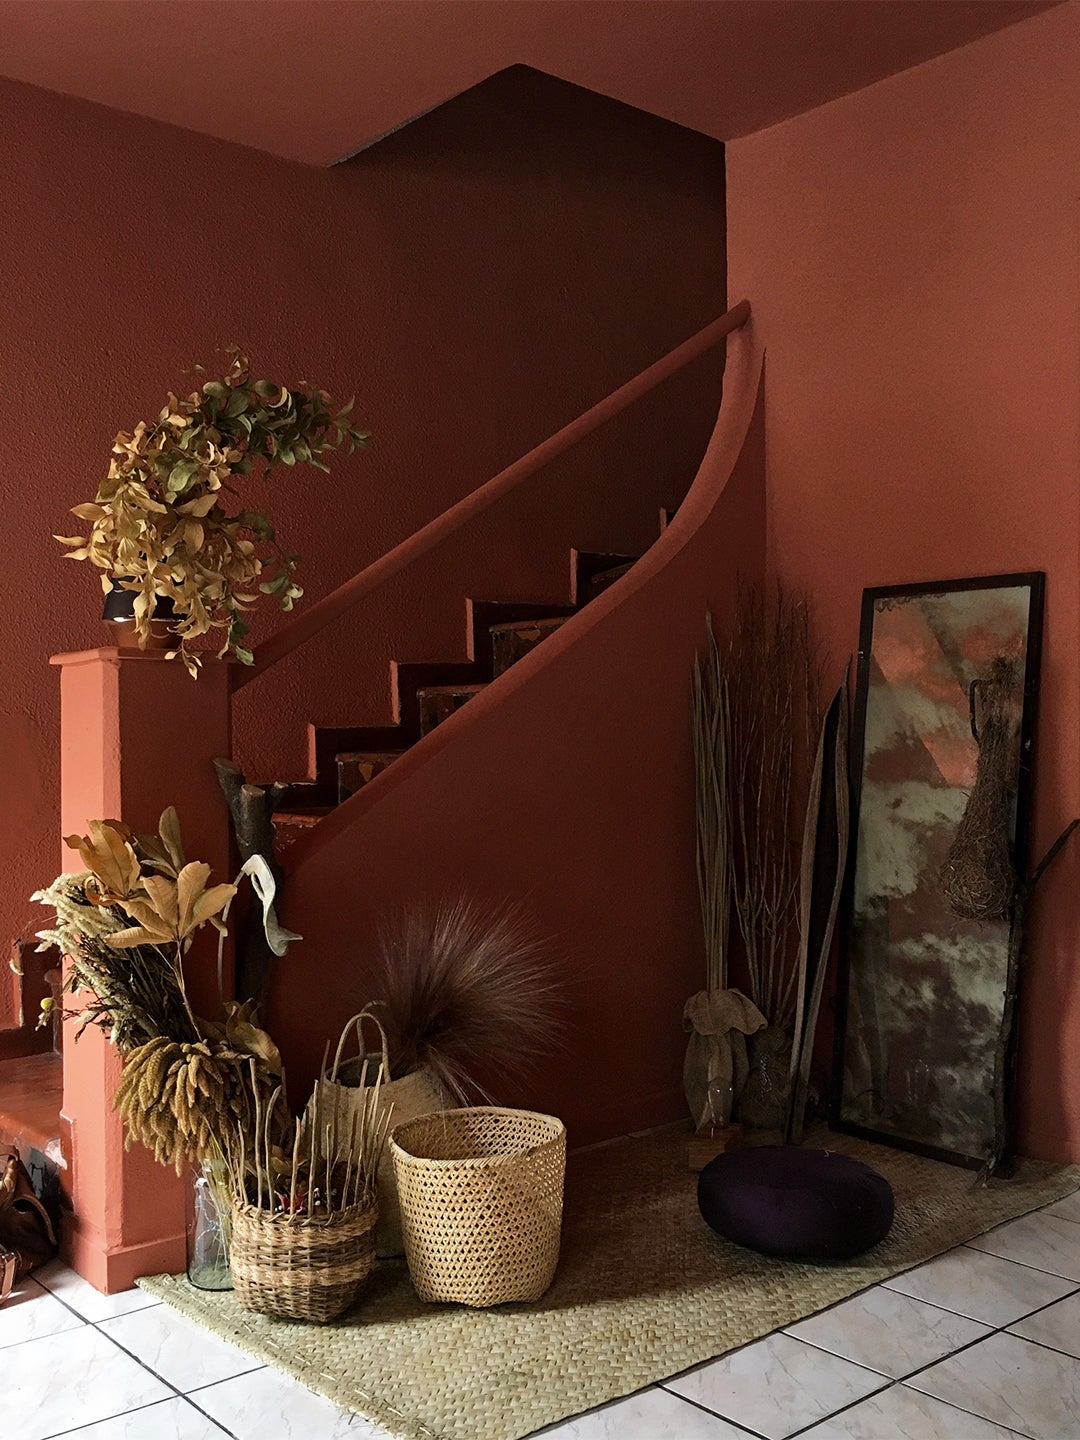 terra cotta colored entryway with staircase